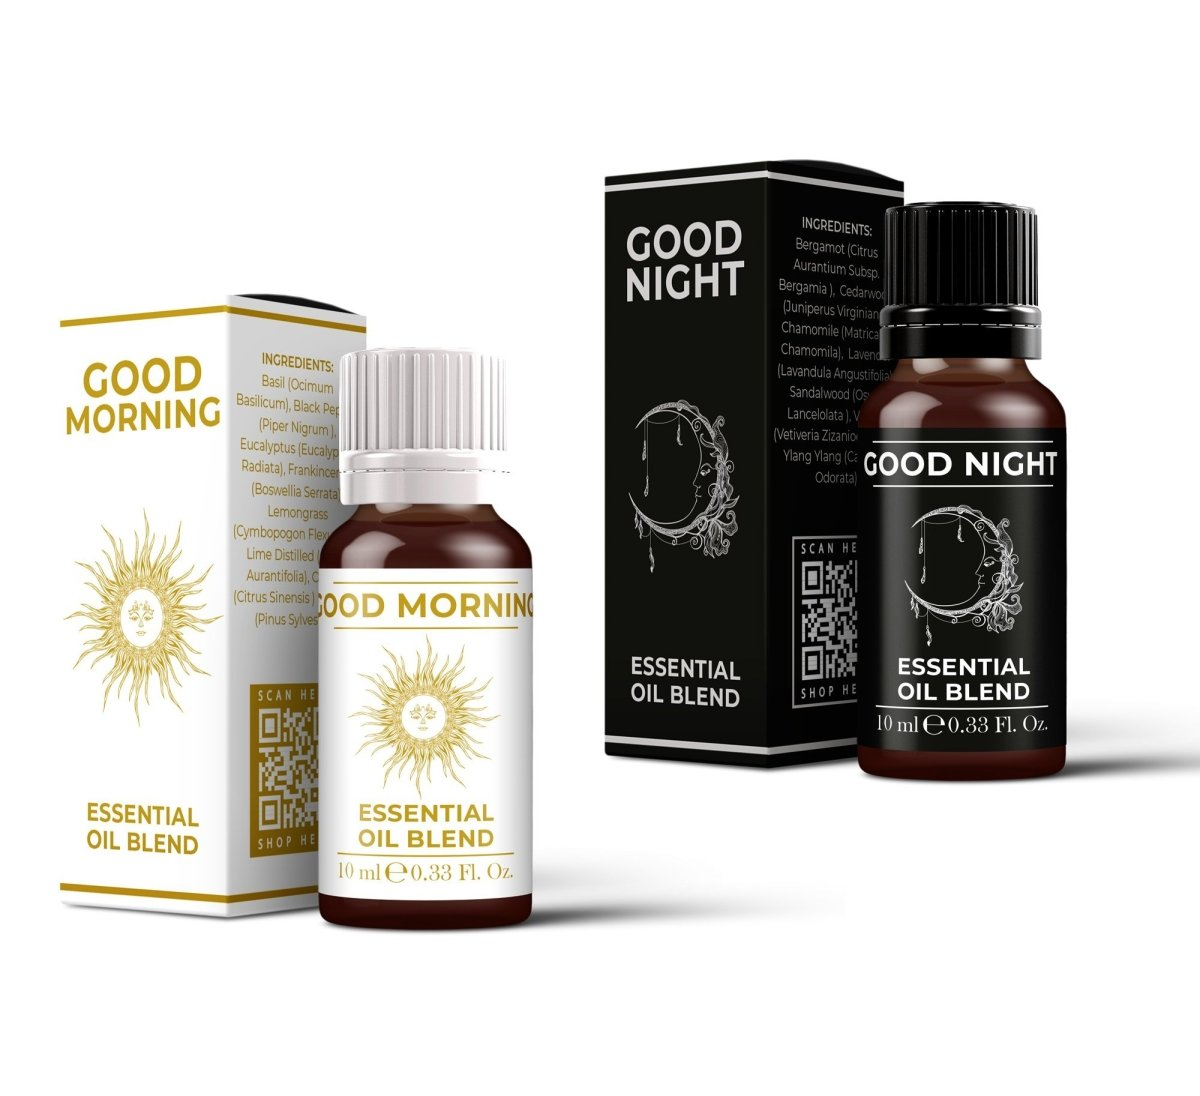 Good Morning & Good Night Essential Oil Blend Twin Pack (2x10ml) - Mystic Moments UK